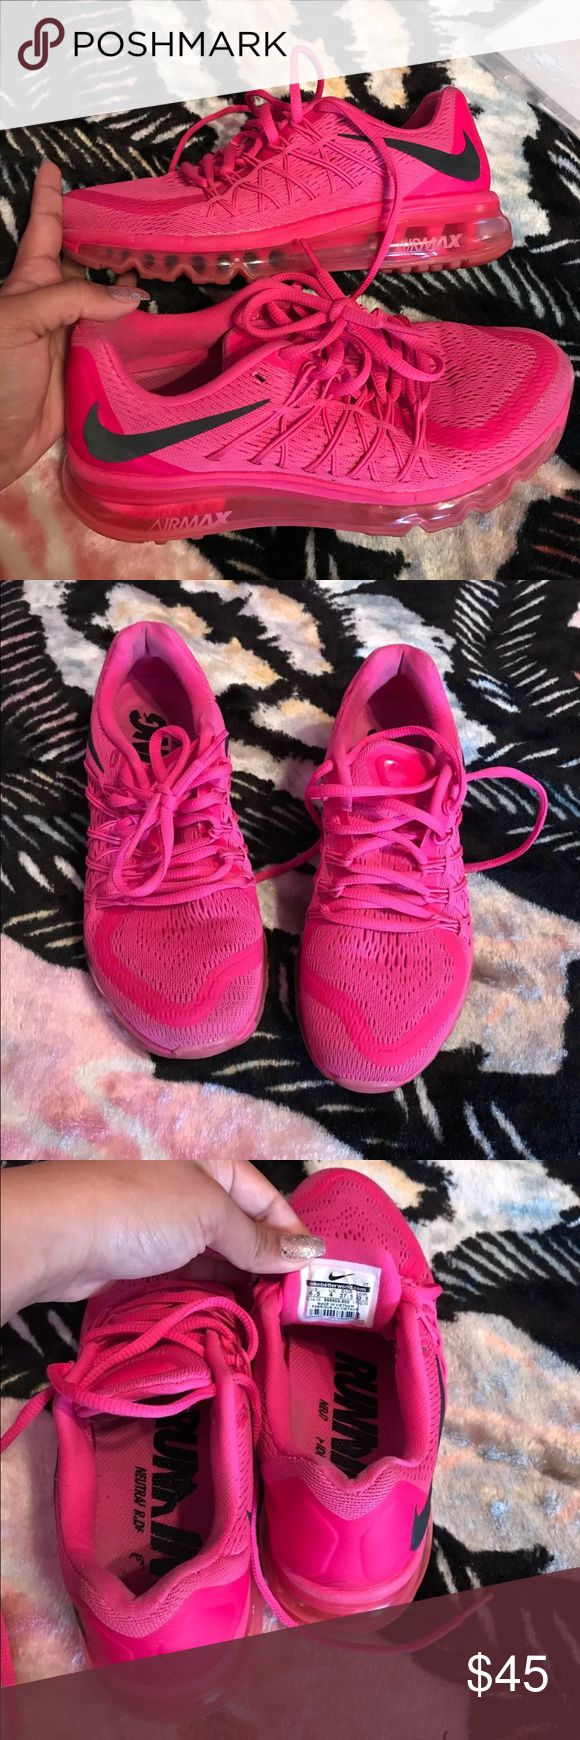 Nike air max A bit dirty but none the less in great conditions. Pink color 6.5 woman Nike Shoes Sneakers